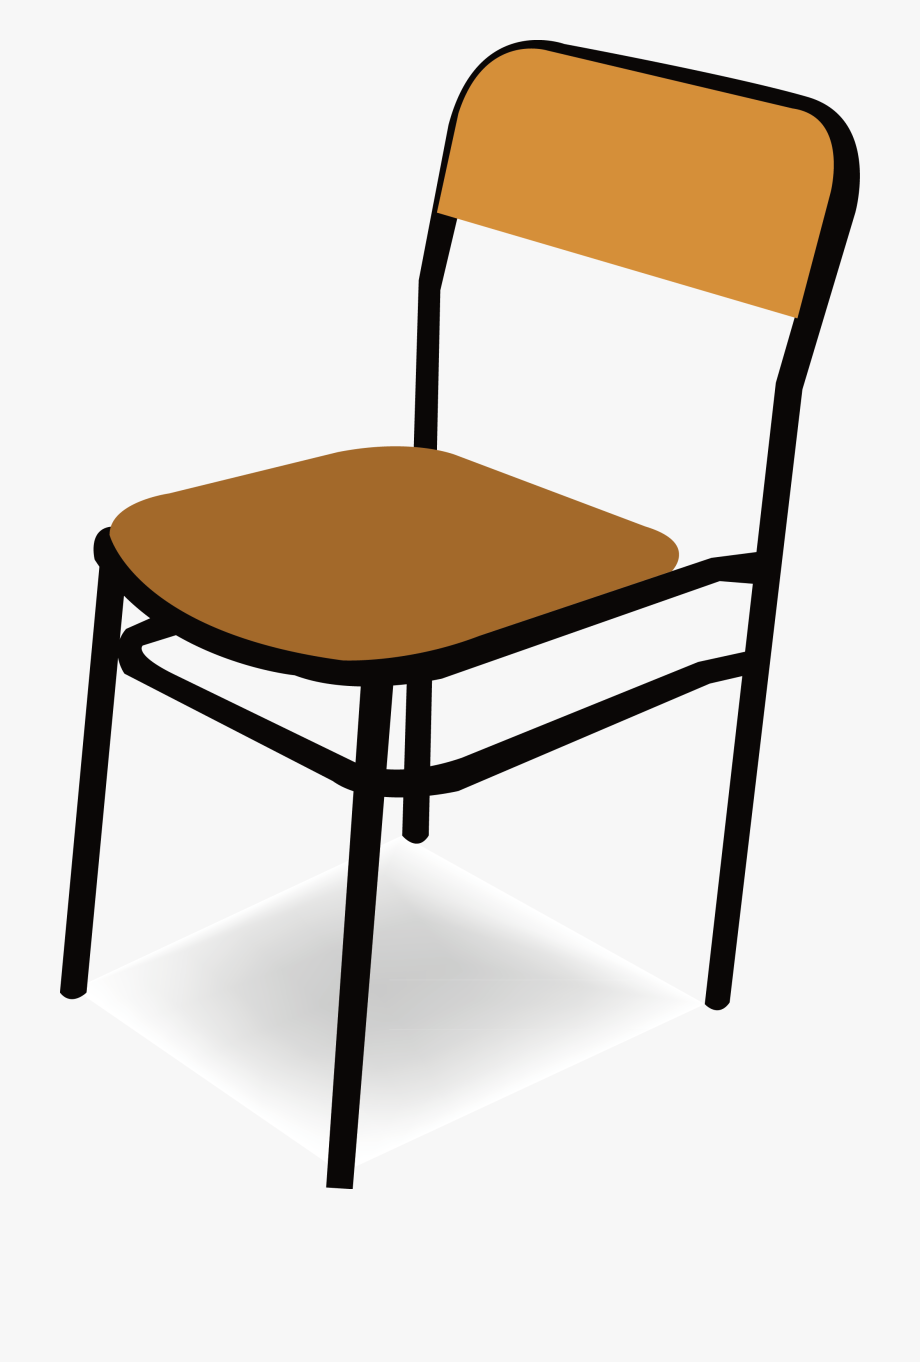 Classroom Vector Chair.